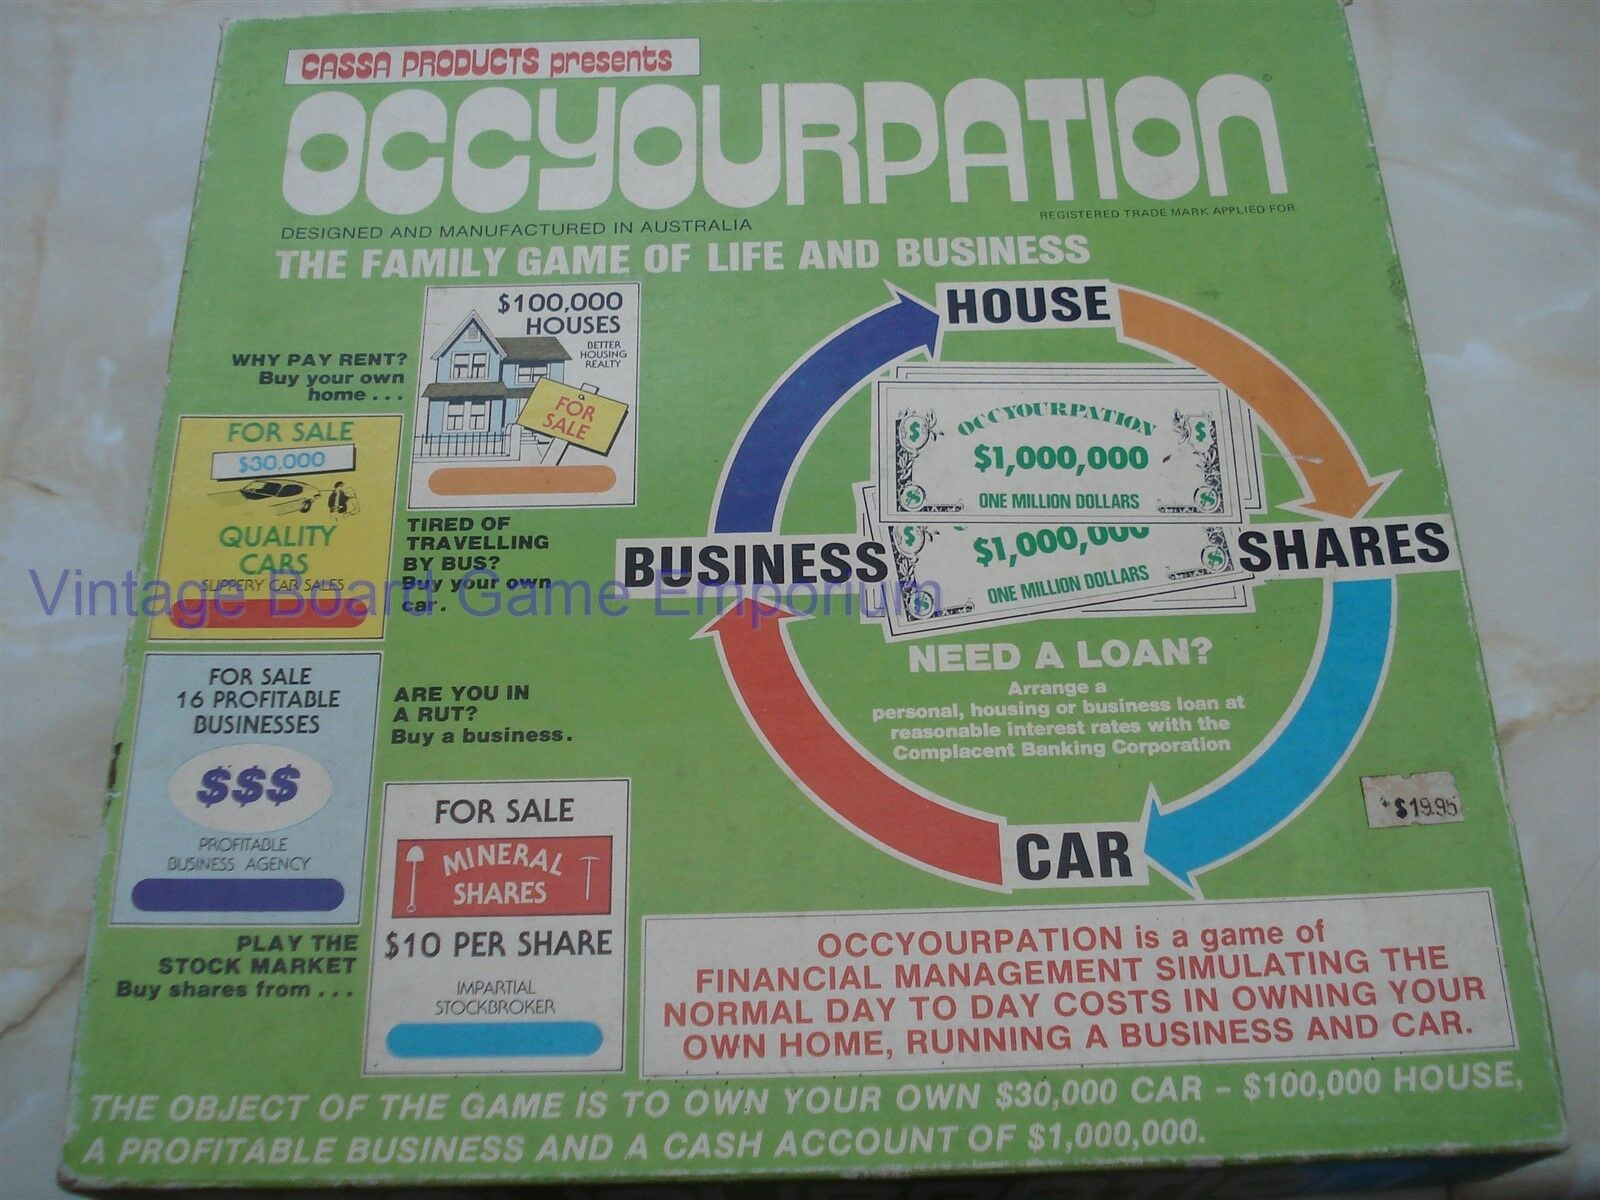 OCCYOURPATION GAME - OCCYOURPATION - CASSA - - - 1970'S - RARE GAME - FINANCIAL GAME 7c66d9